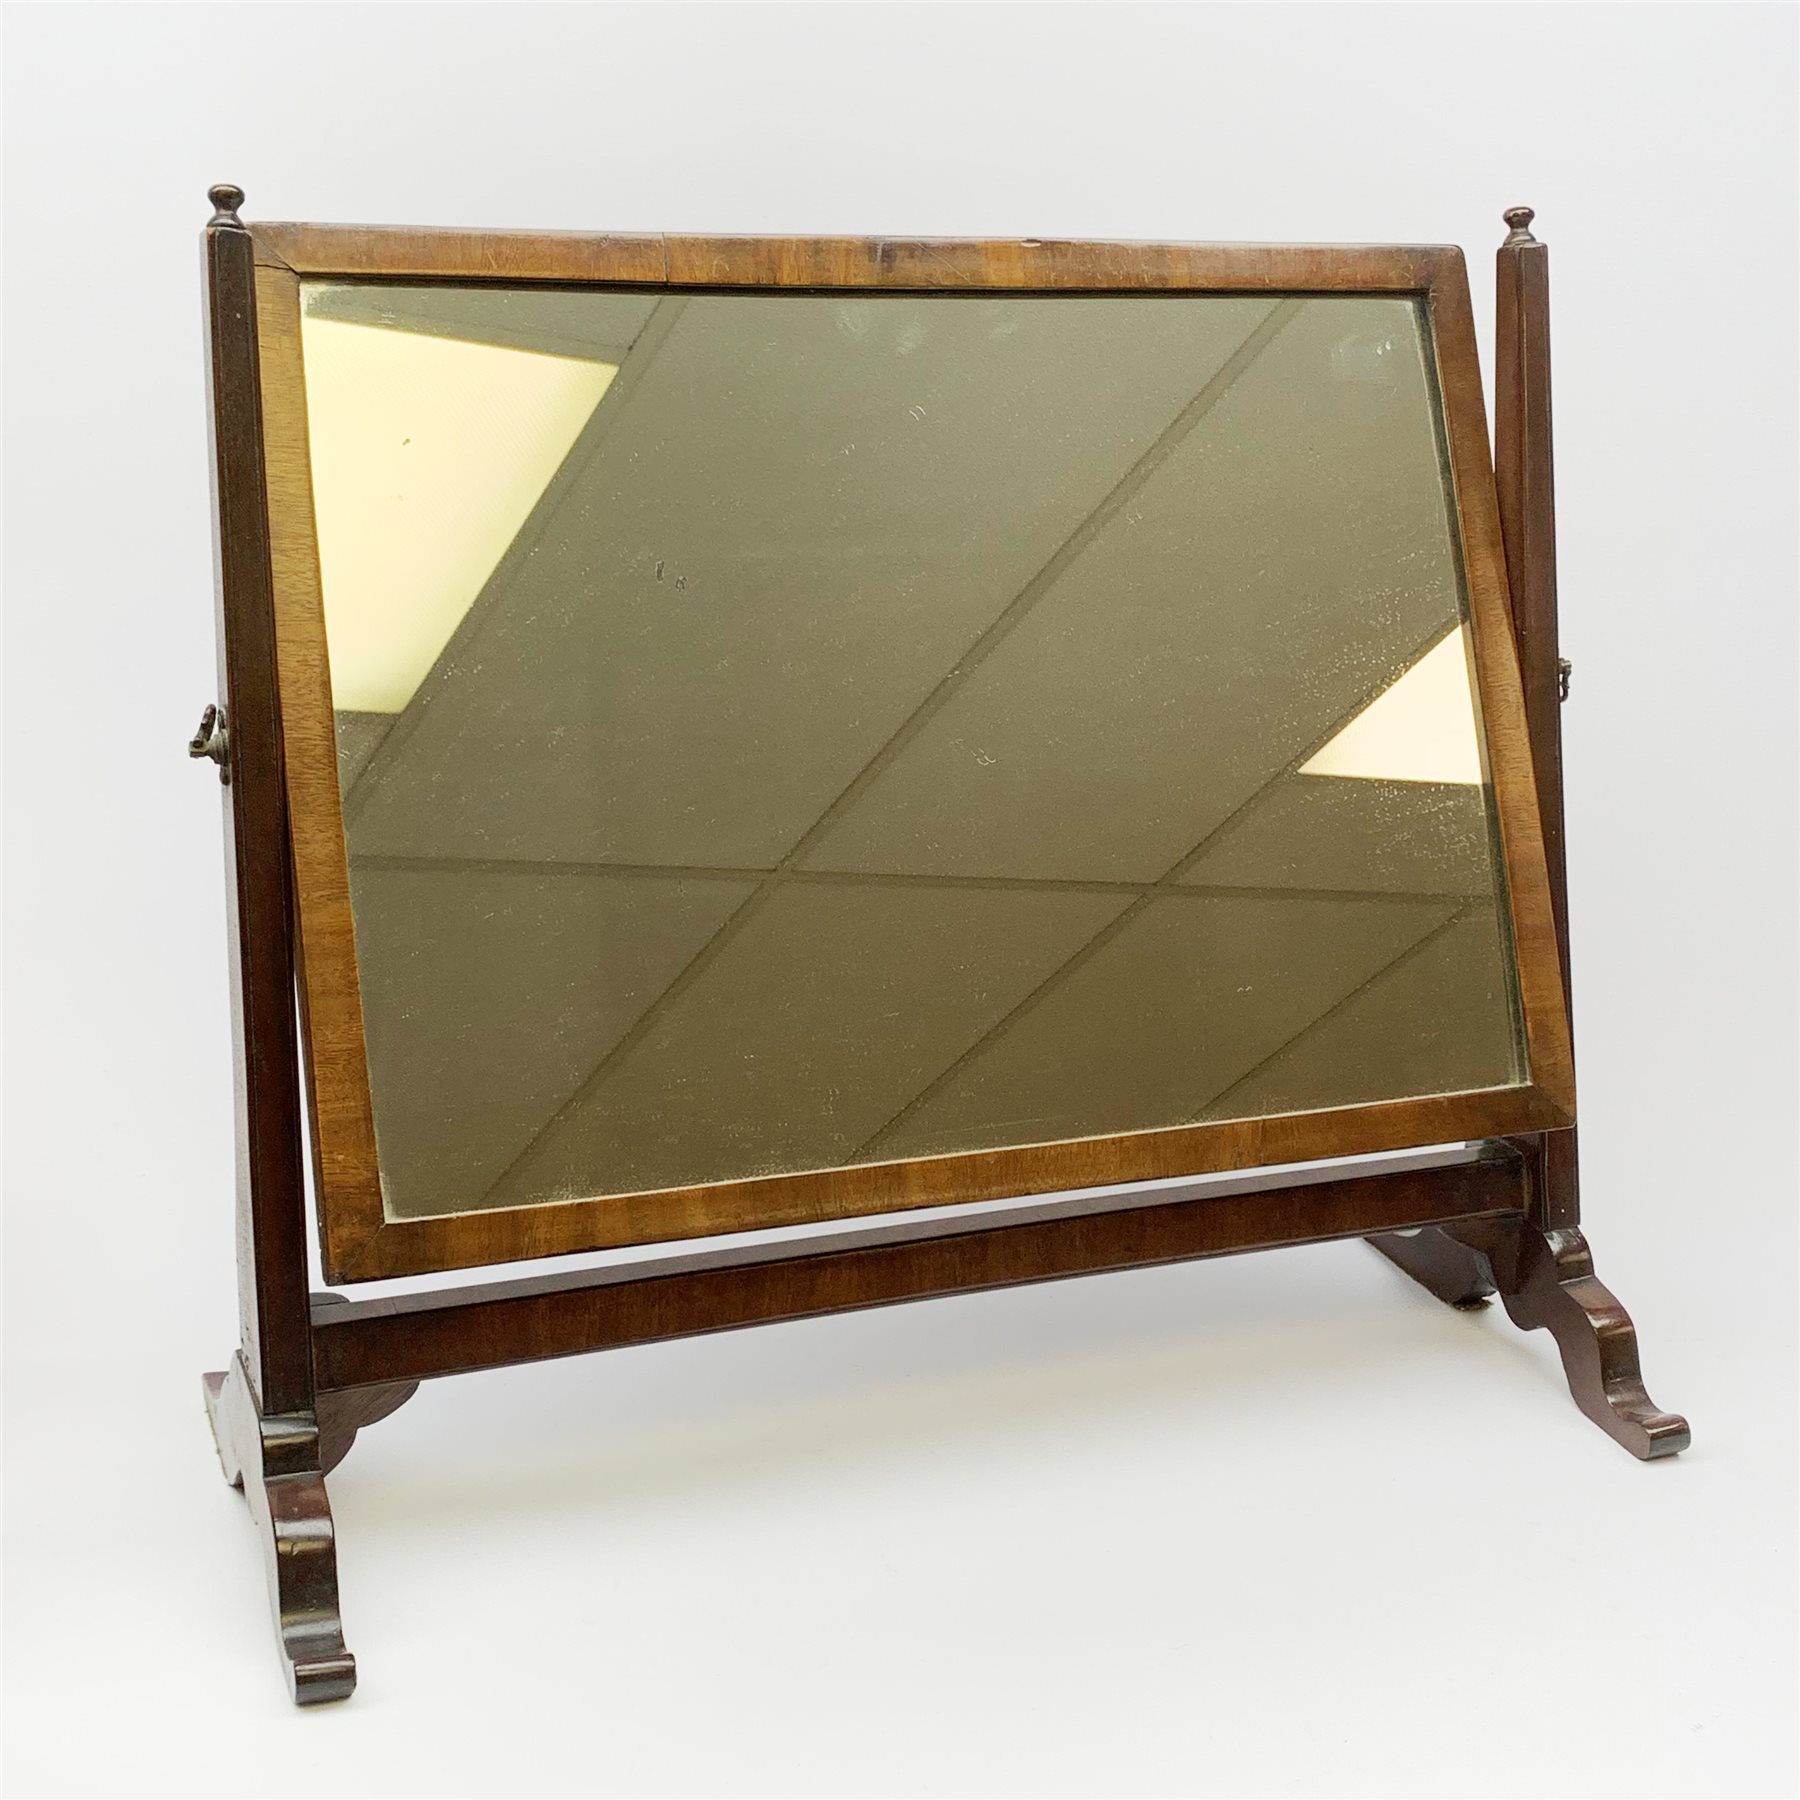 An Edwardian mahogany dressing table mirror, the oval mirror plate in swing frame, upon flared legs - Image 2 of 2